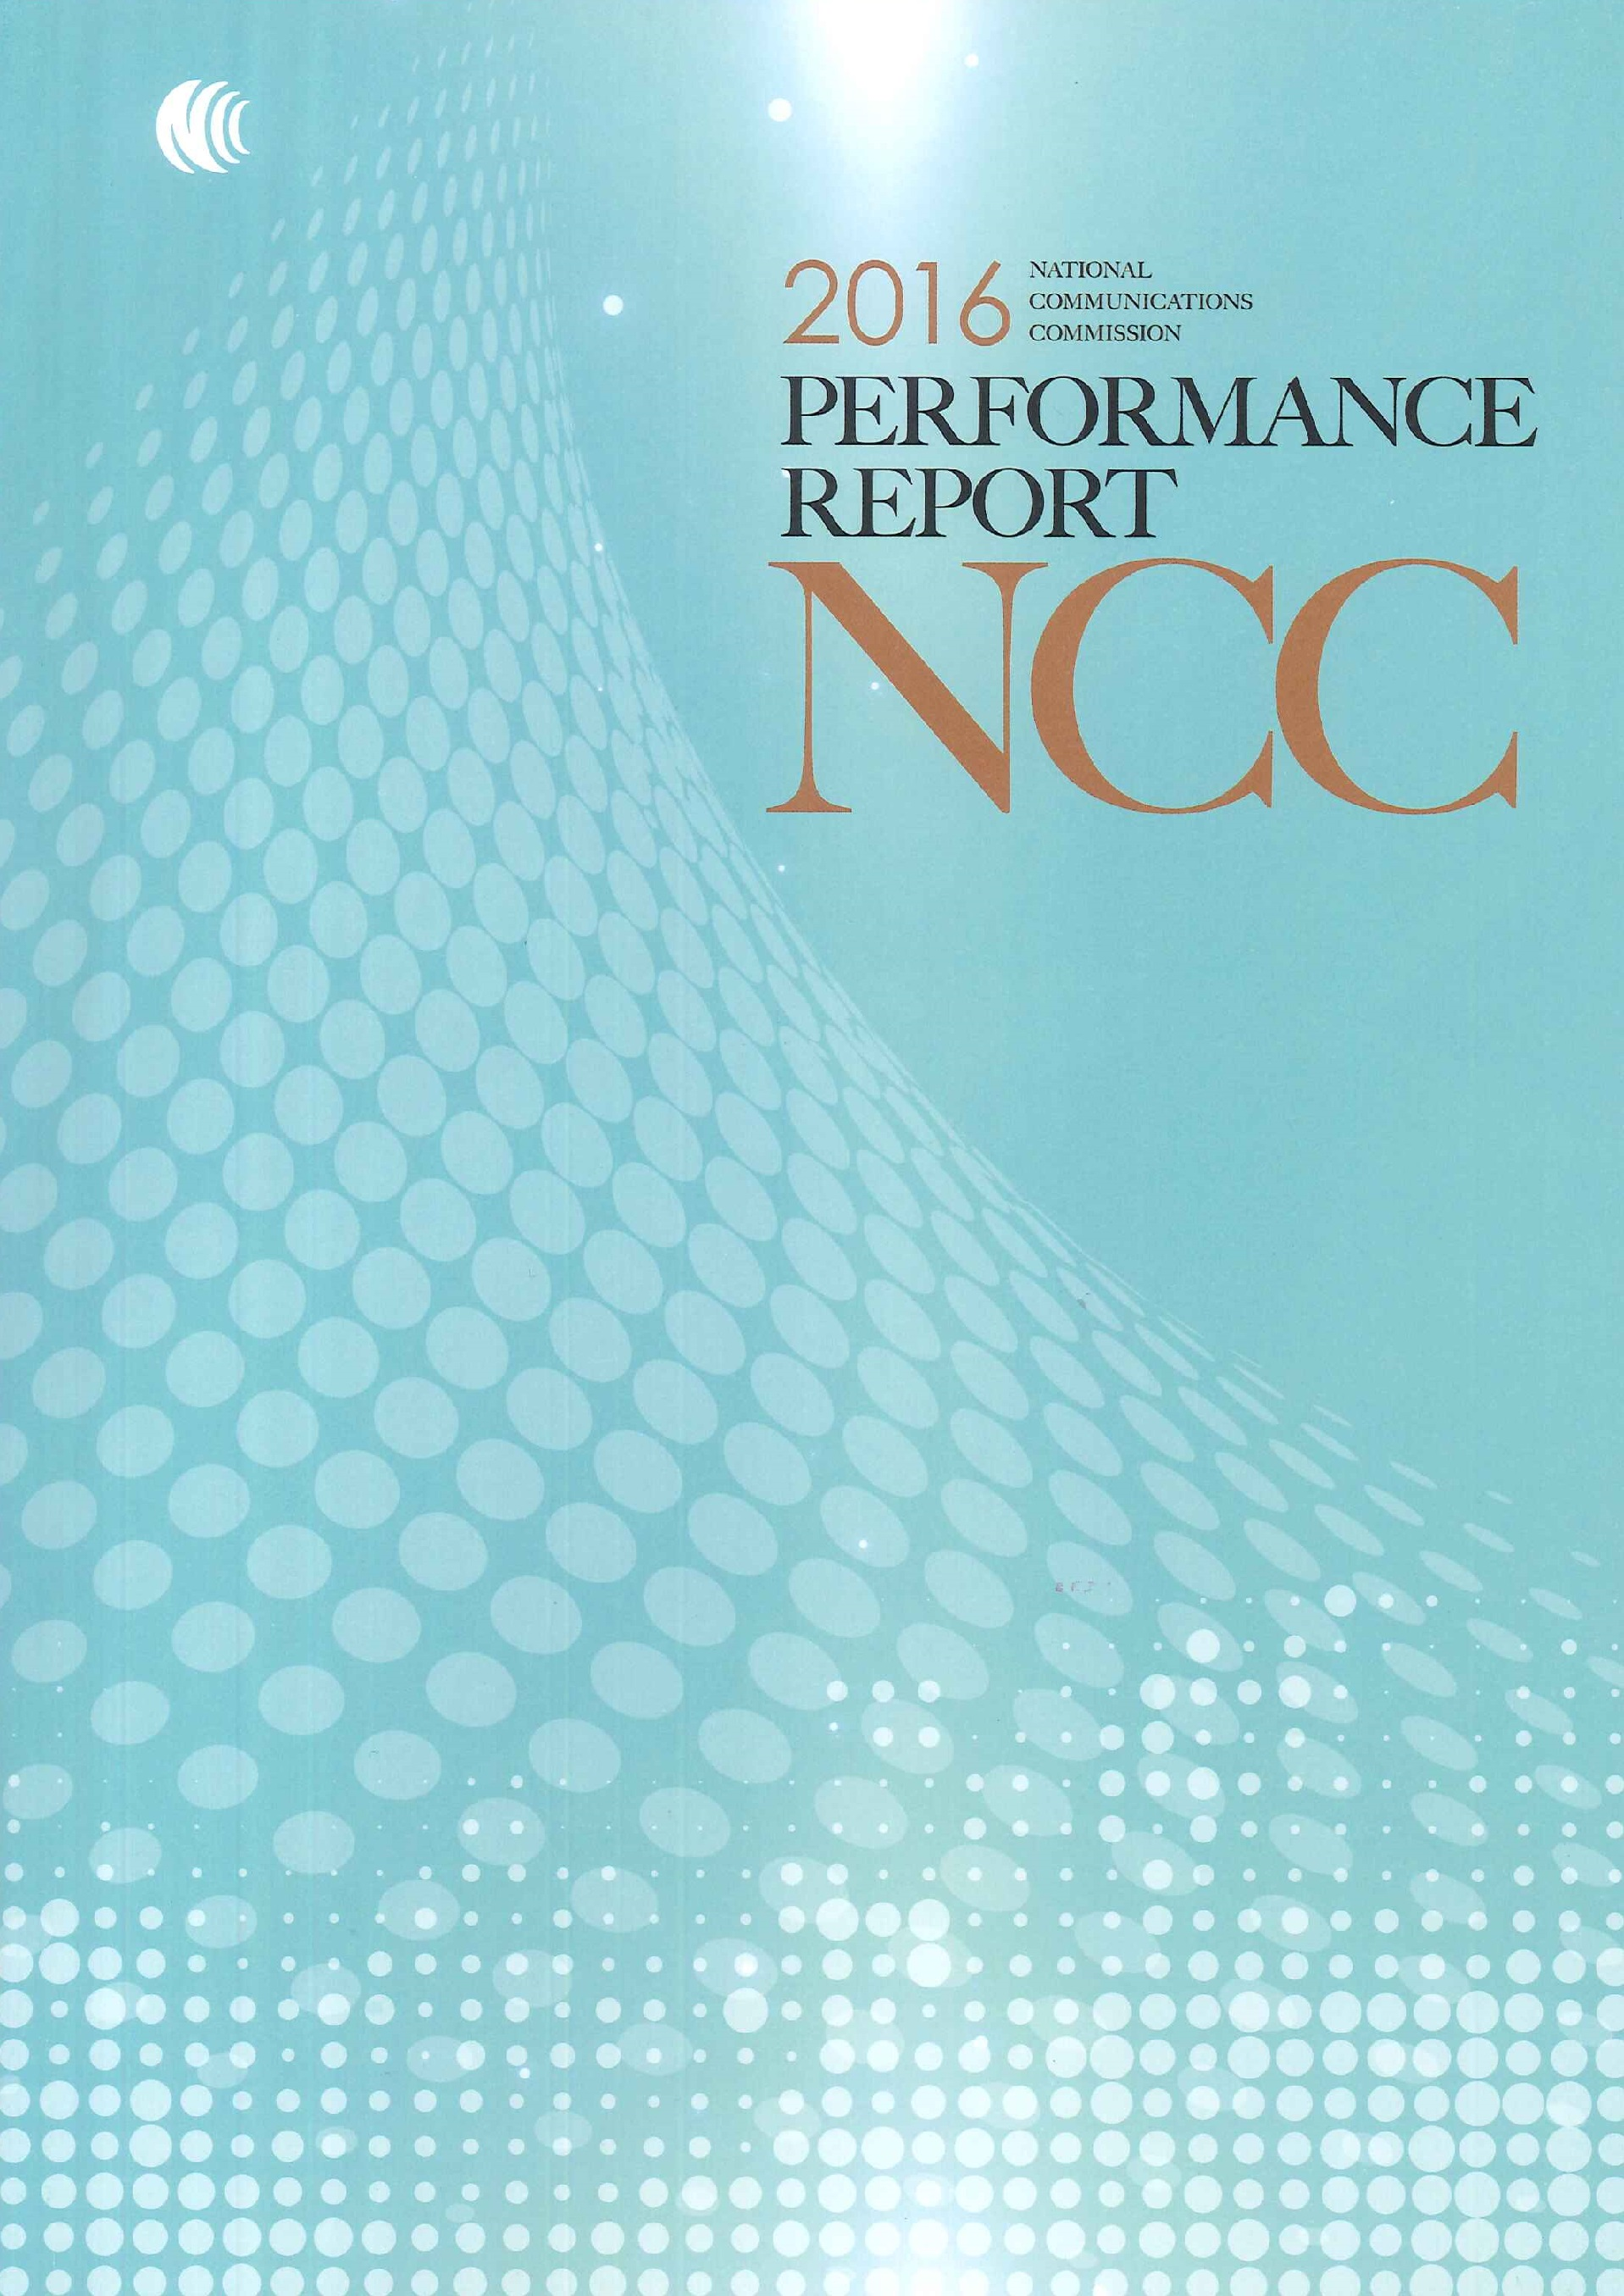 NCC performance reports.2016